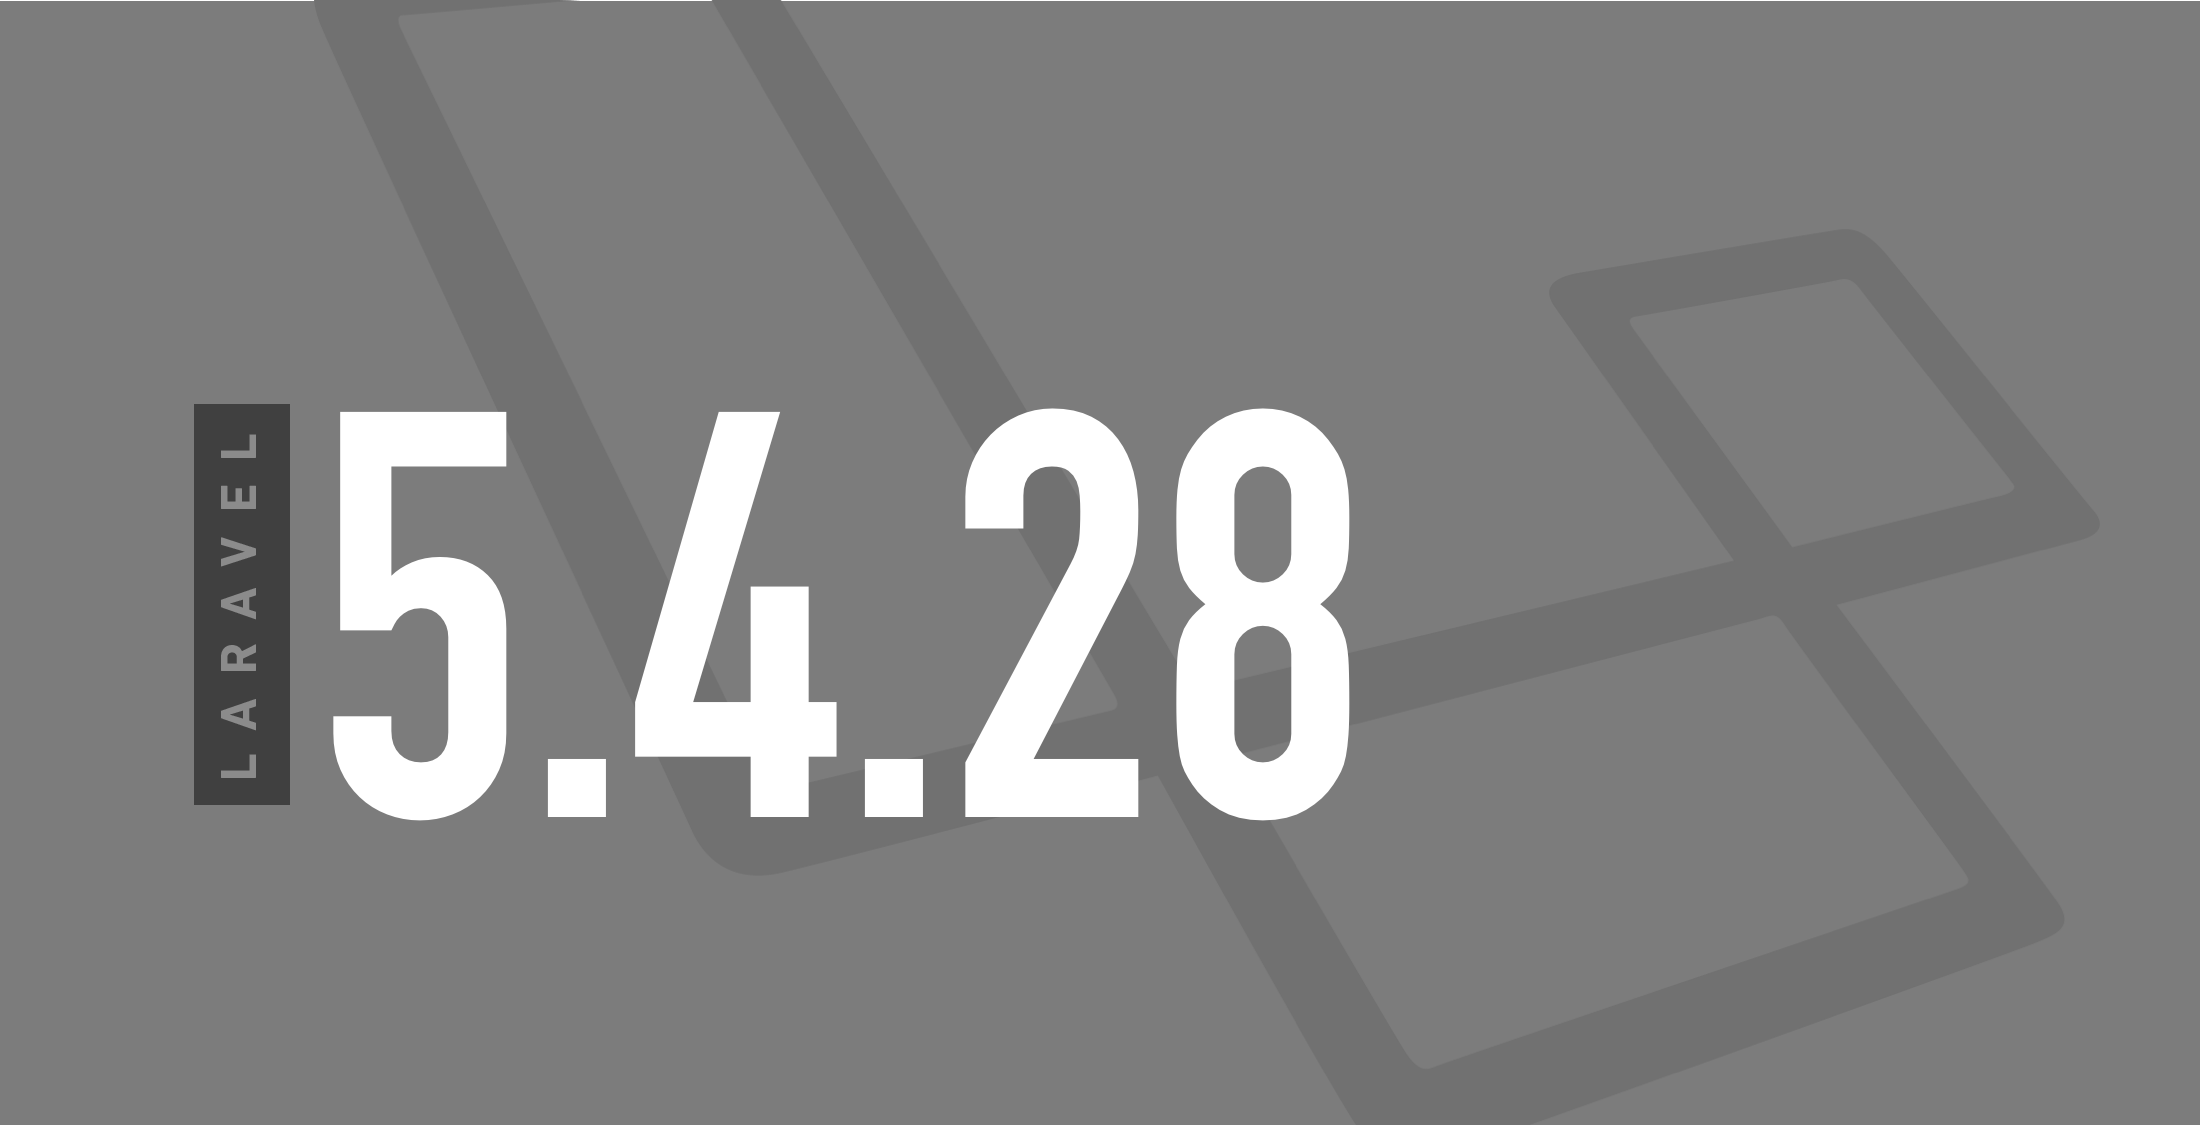 Laravel V5.4.28 is now released